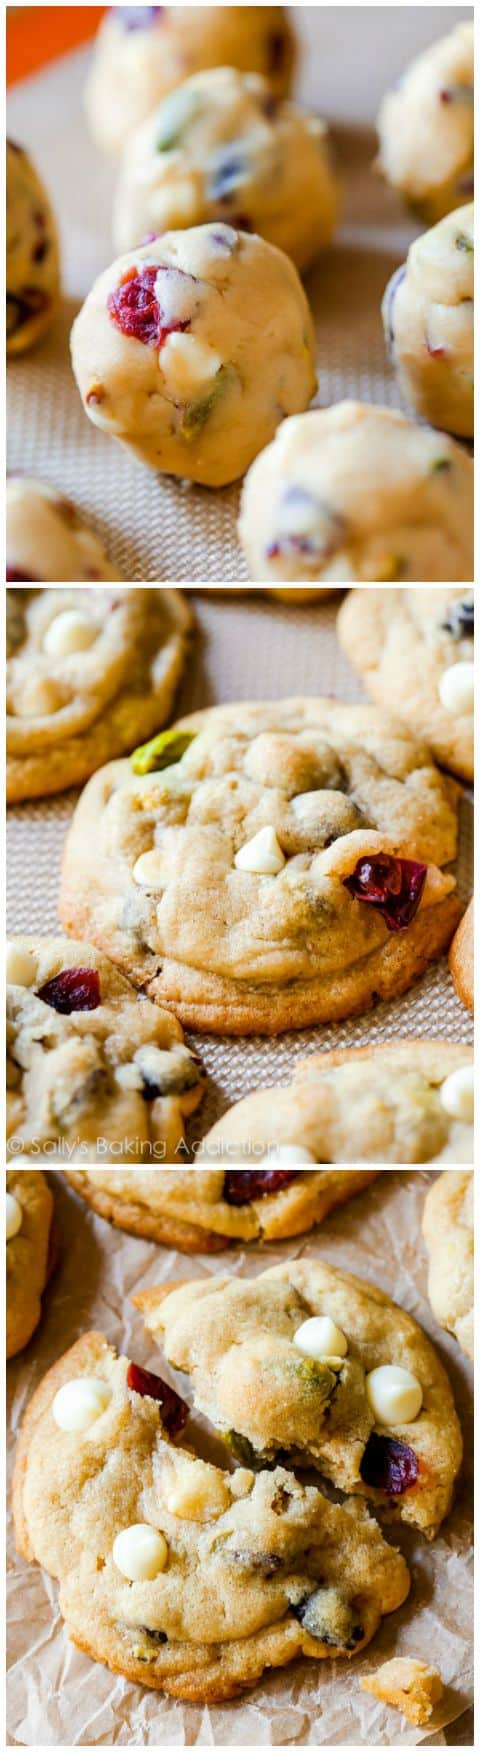 White Chocolate Cranberry Pistachio Cookies. - Sallys Baking Addiction